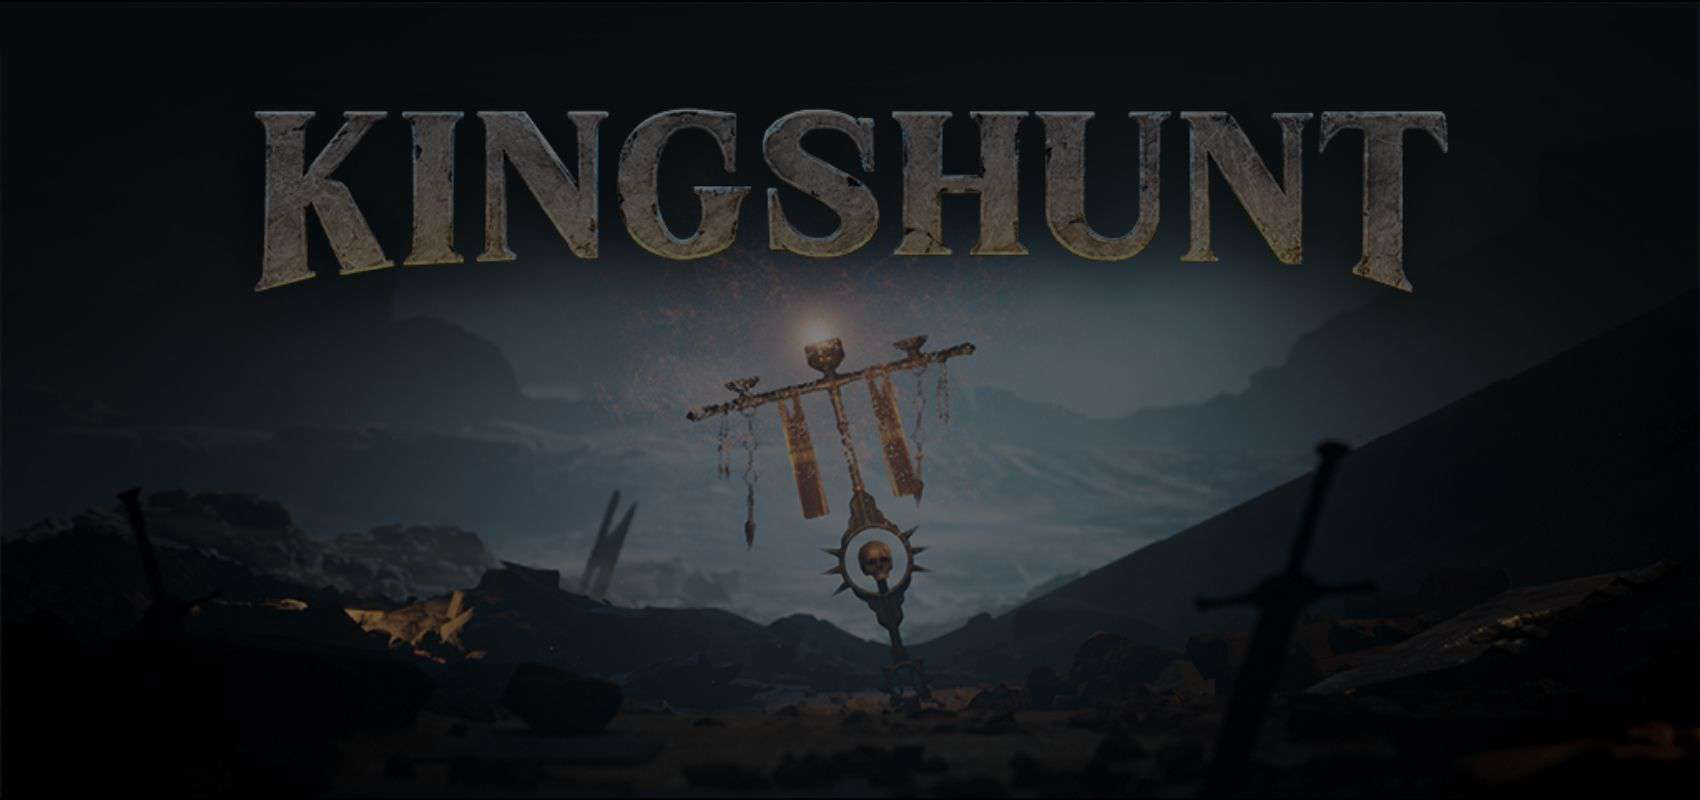 Crush your opponents, storm the castle and take the throne in Kingshunt – coming to PC and consoles in 2021